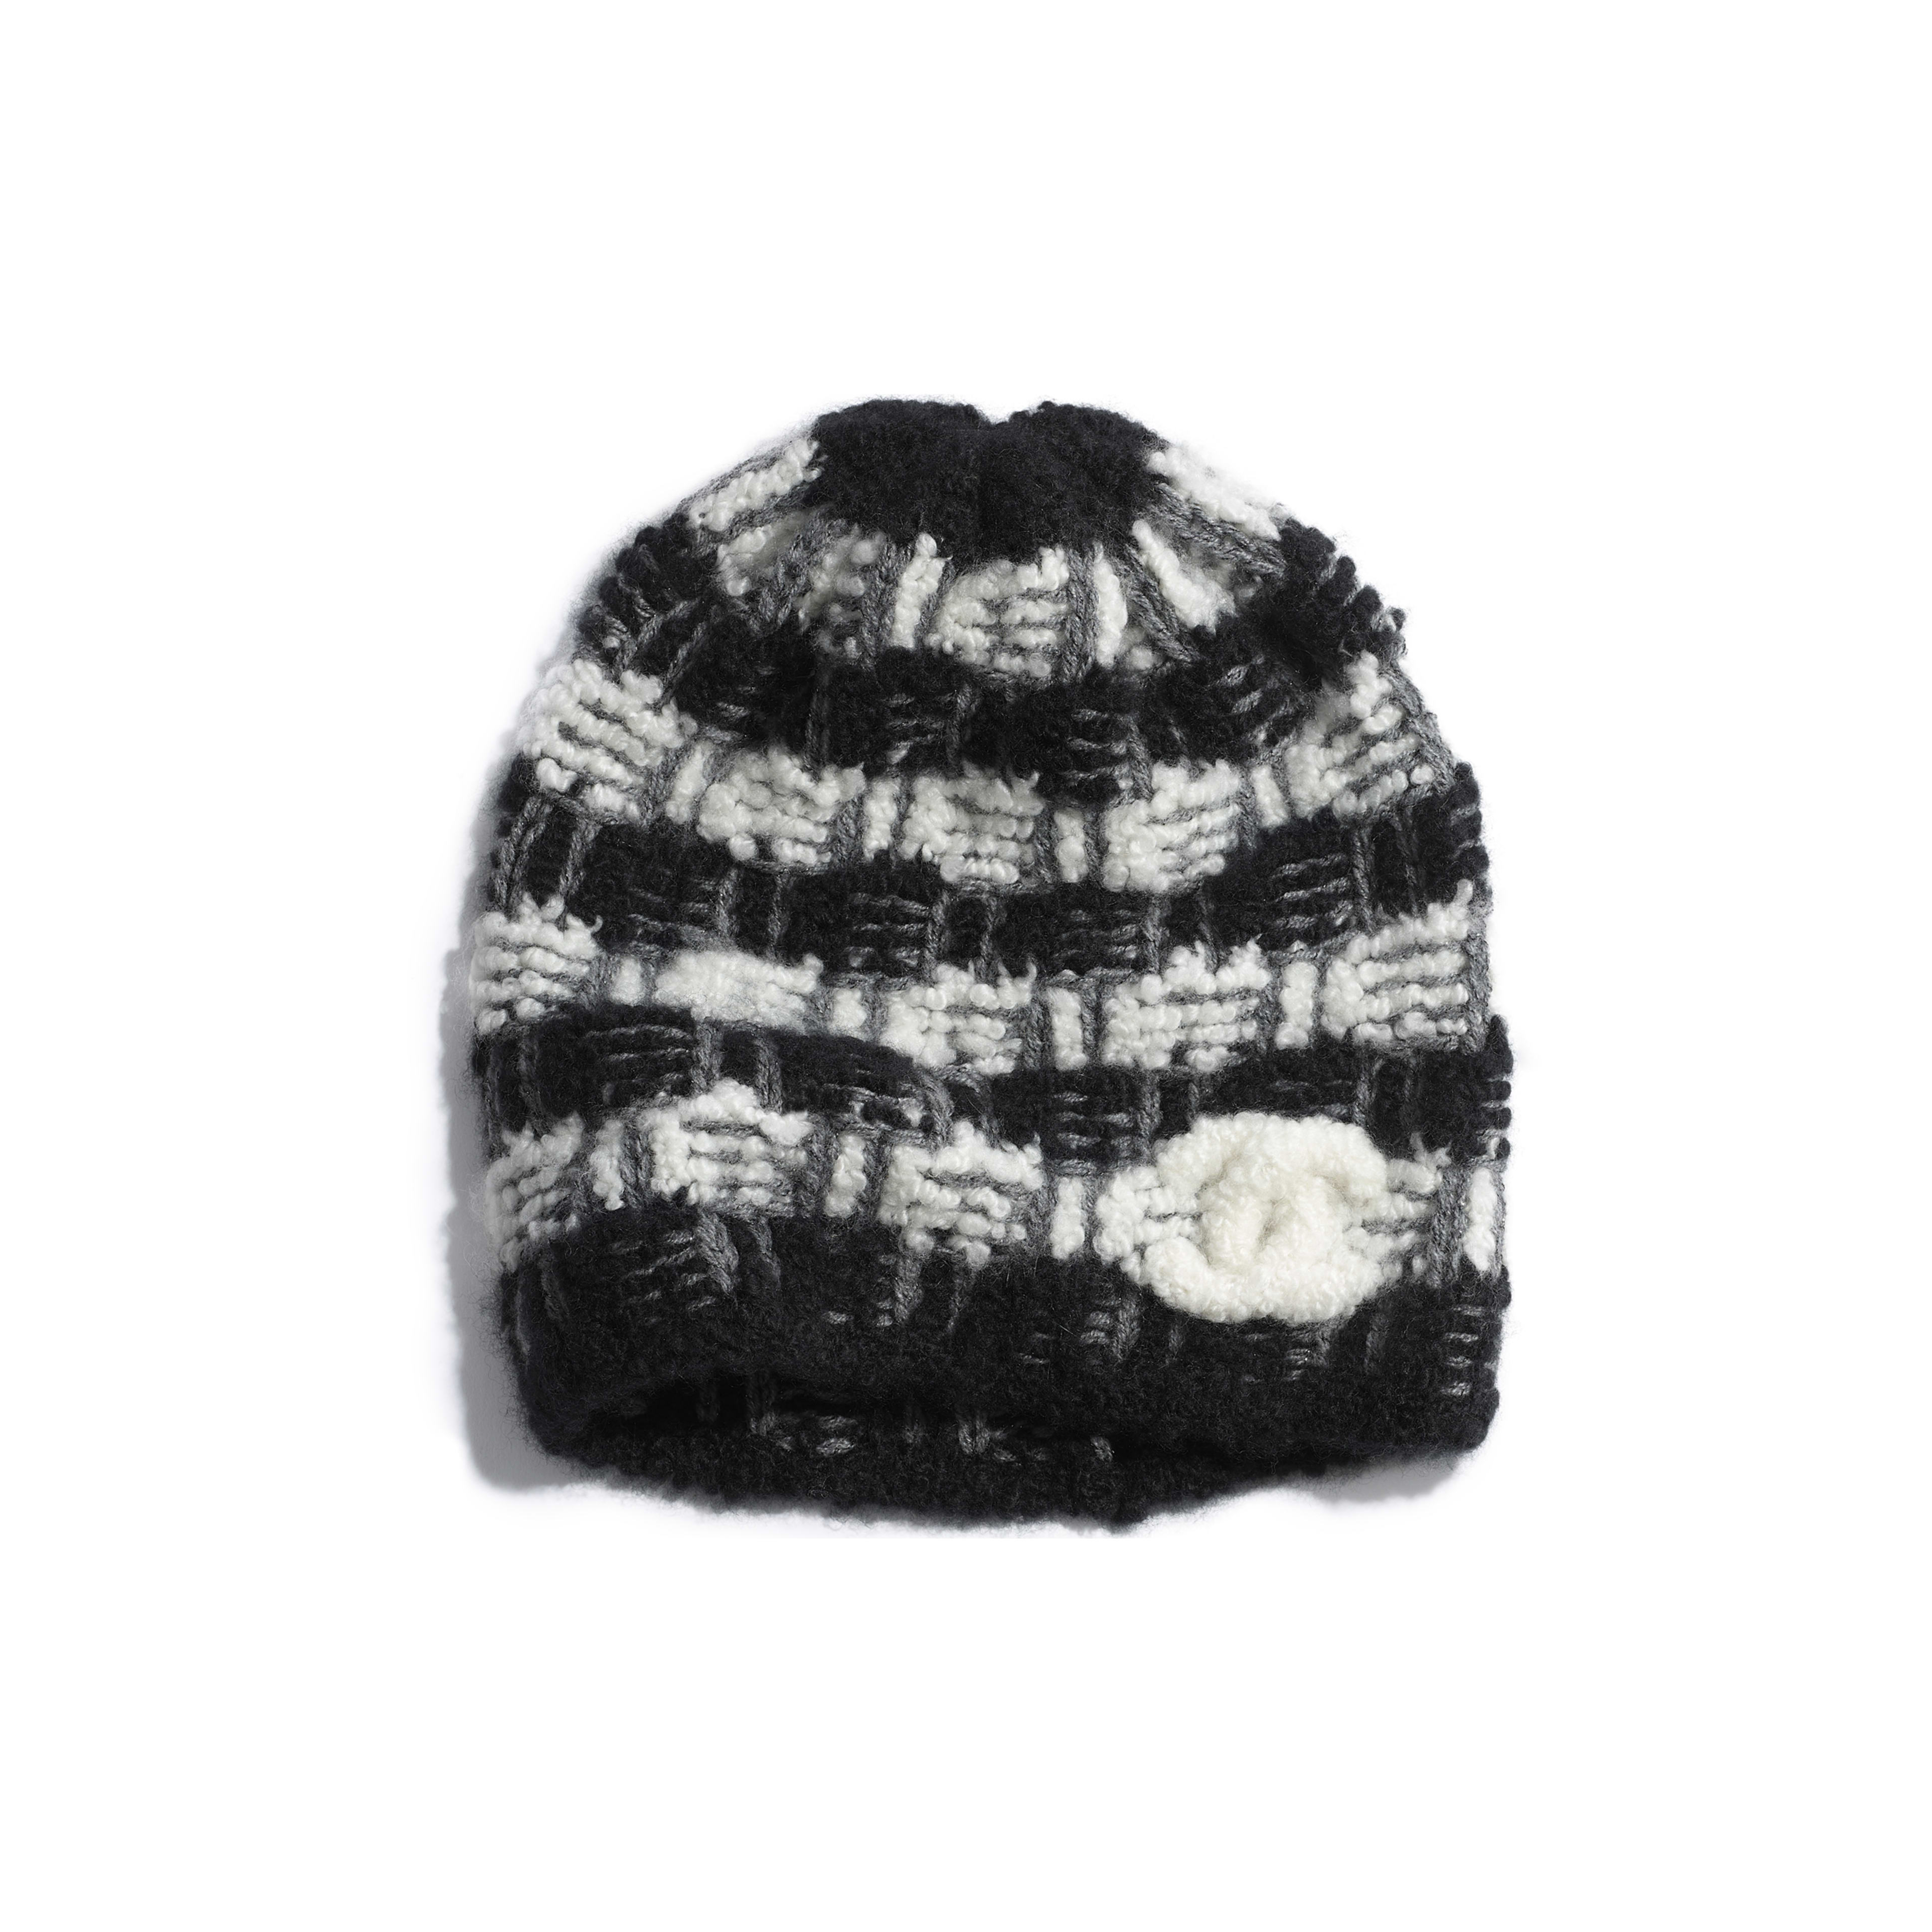 Beanie - Black & Gray - Cashmere - Default view - see full sized version